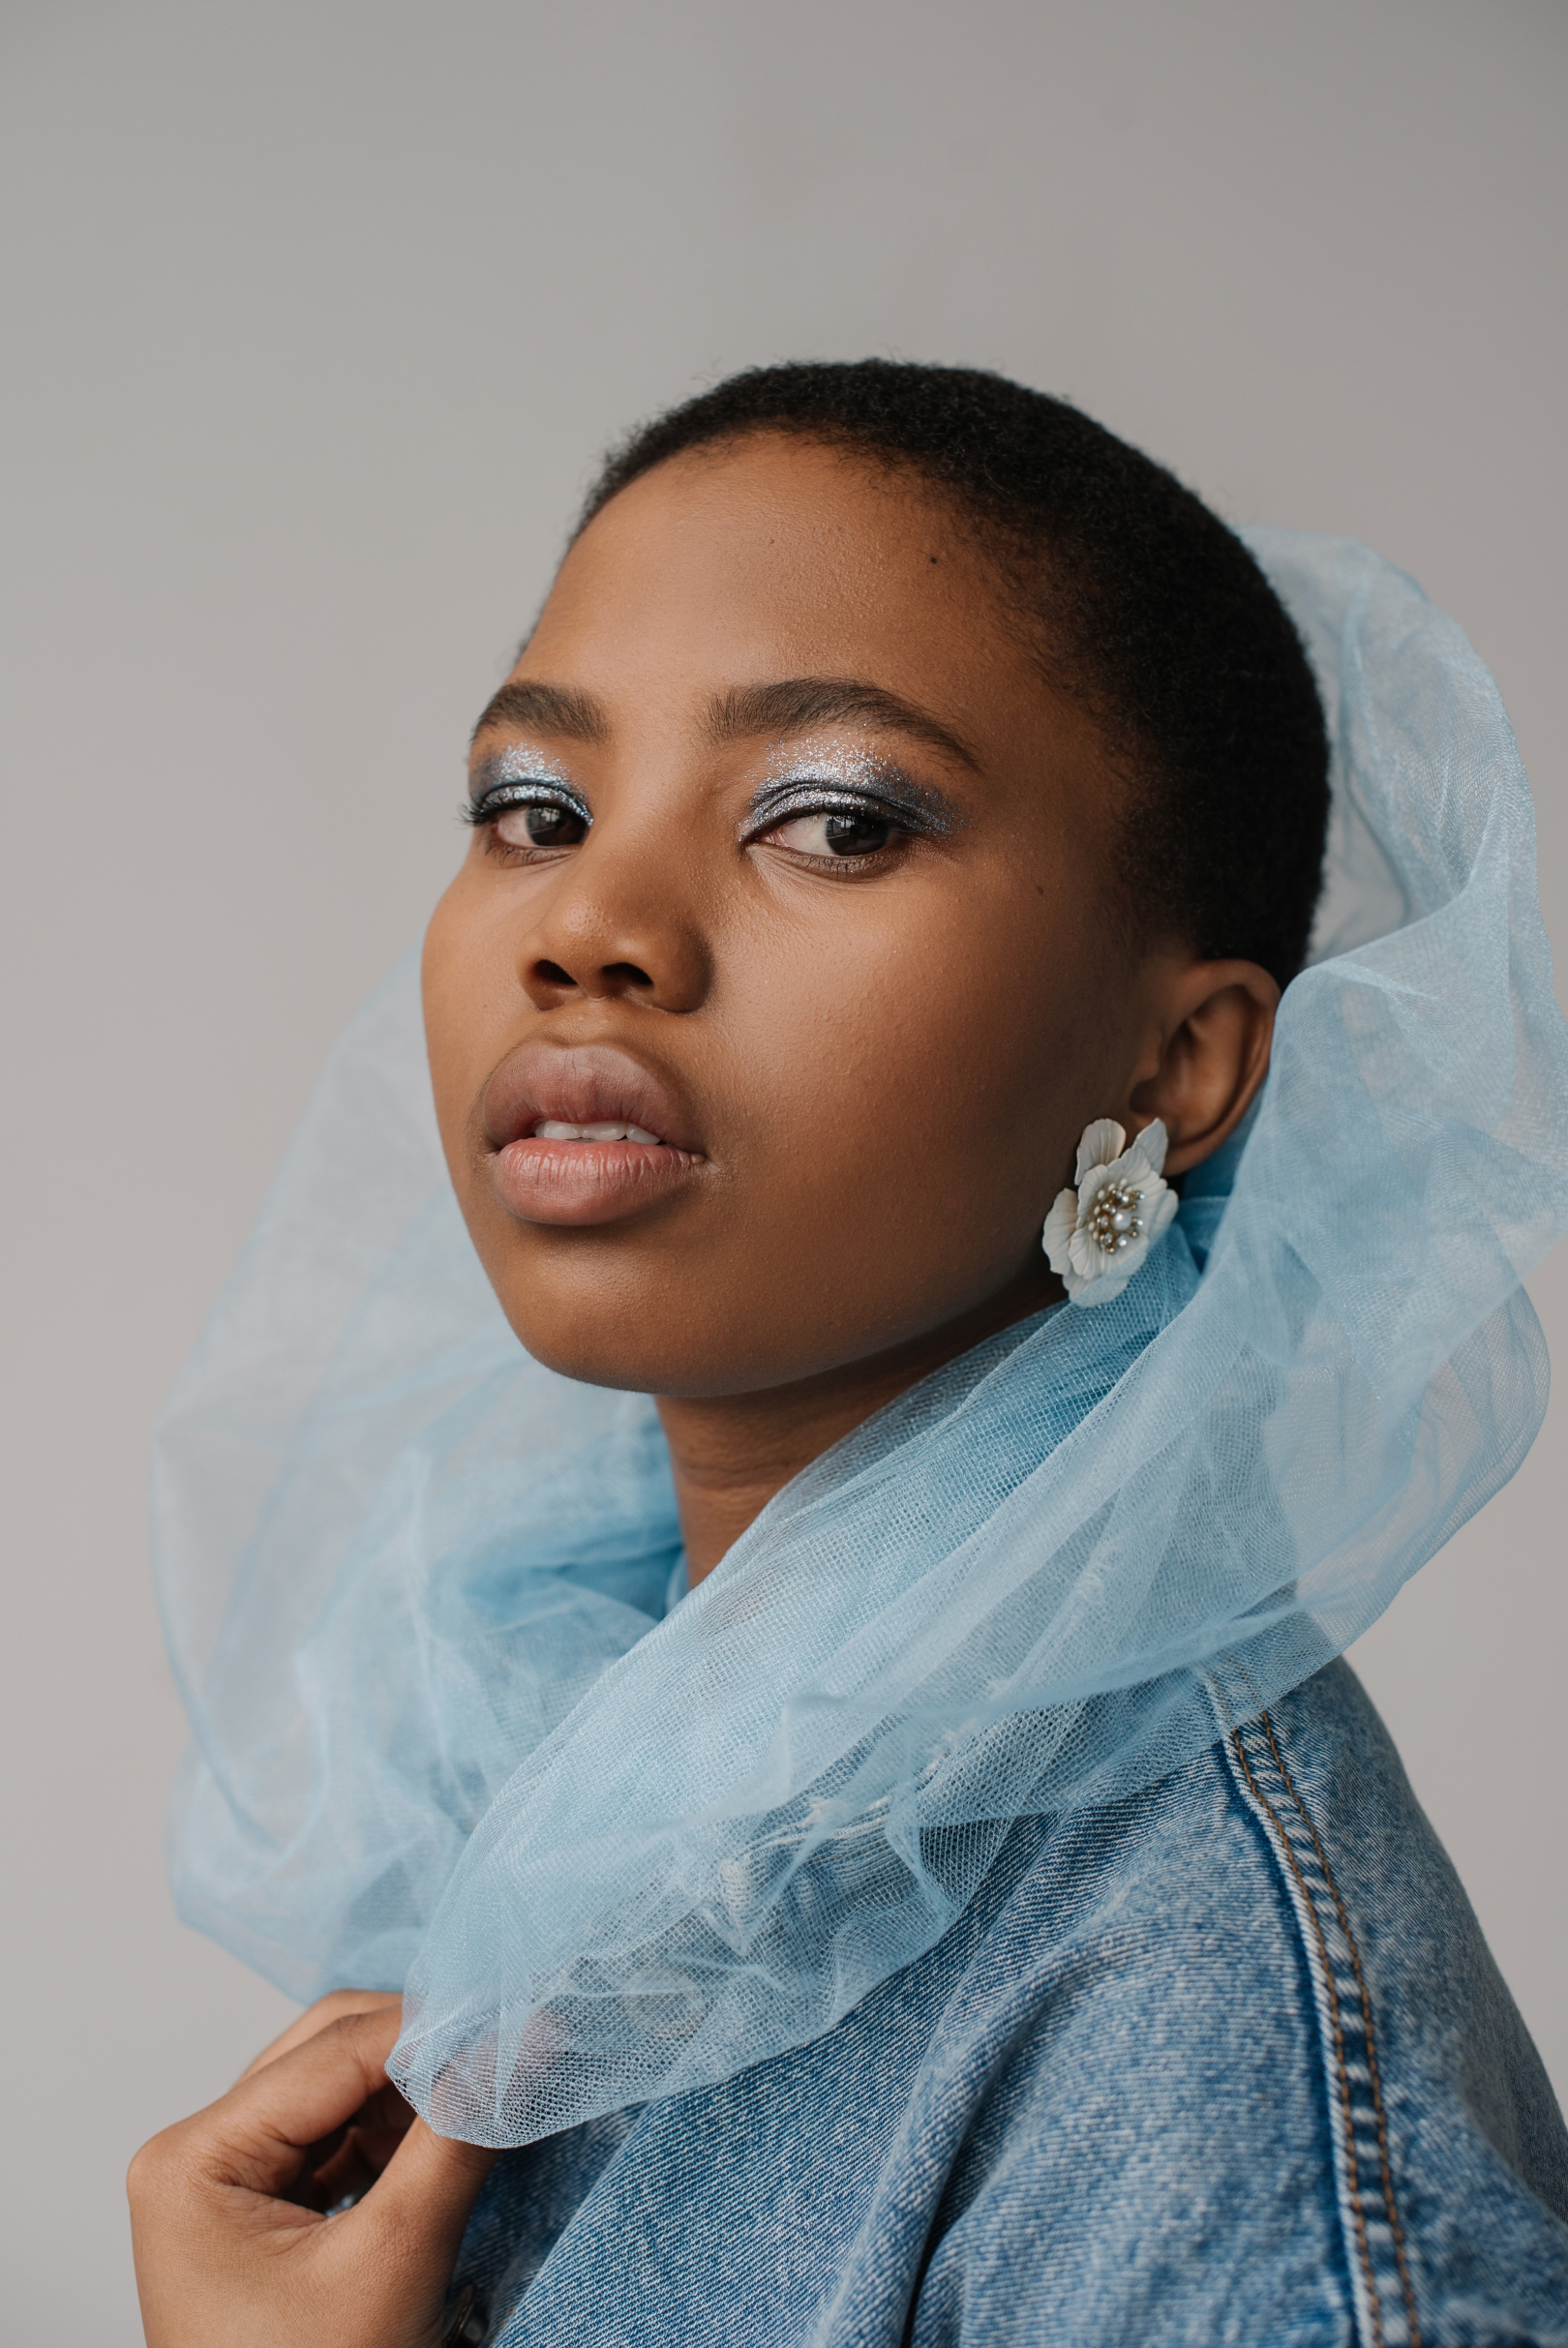 Black girl with blue scarf and denim jacket wearing nude lipstick and blue eye shadow